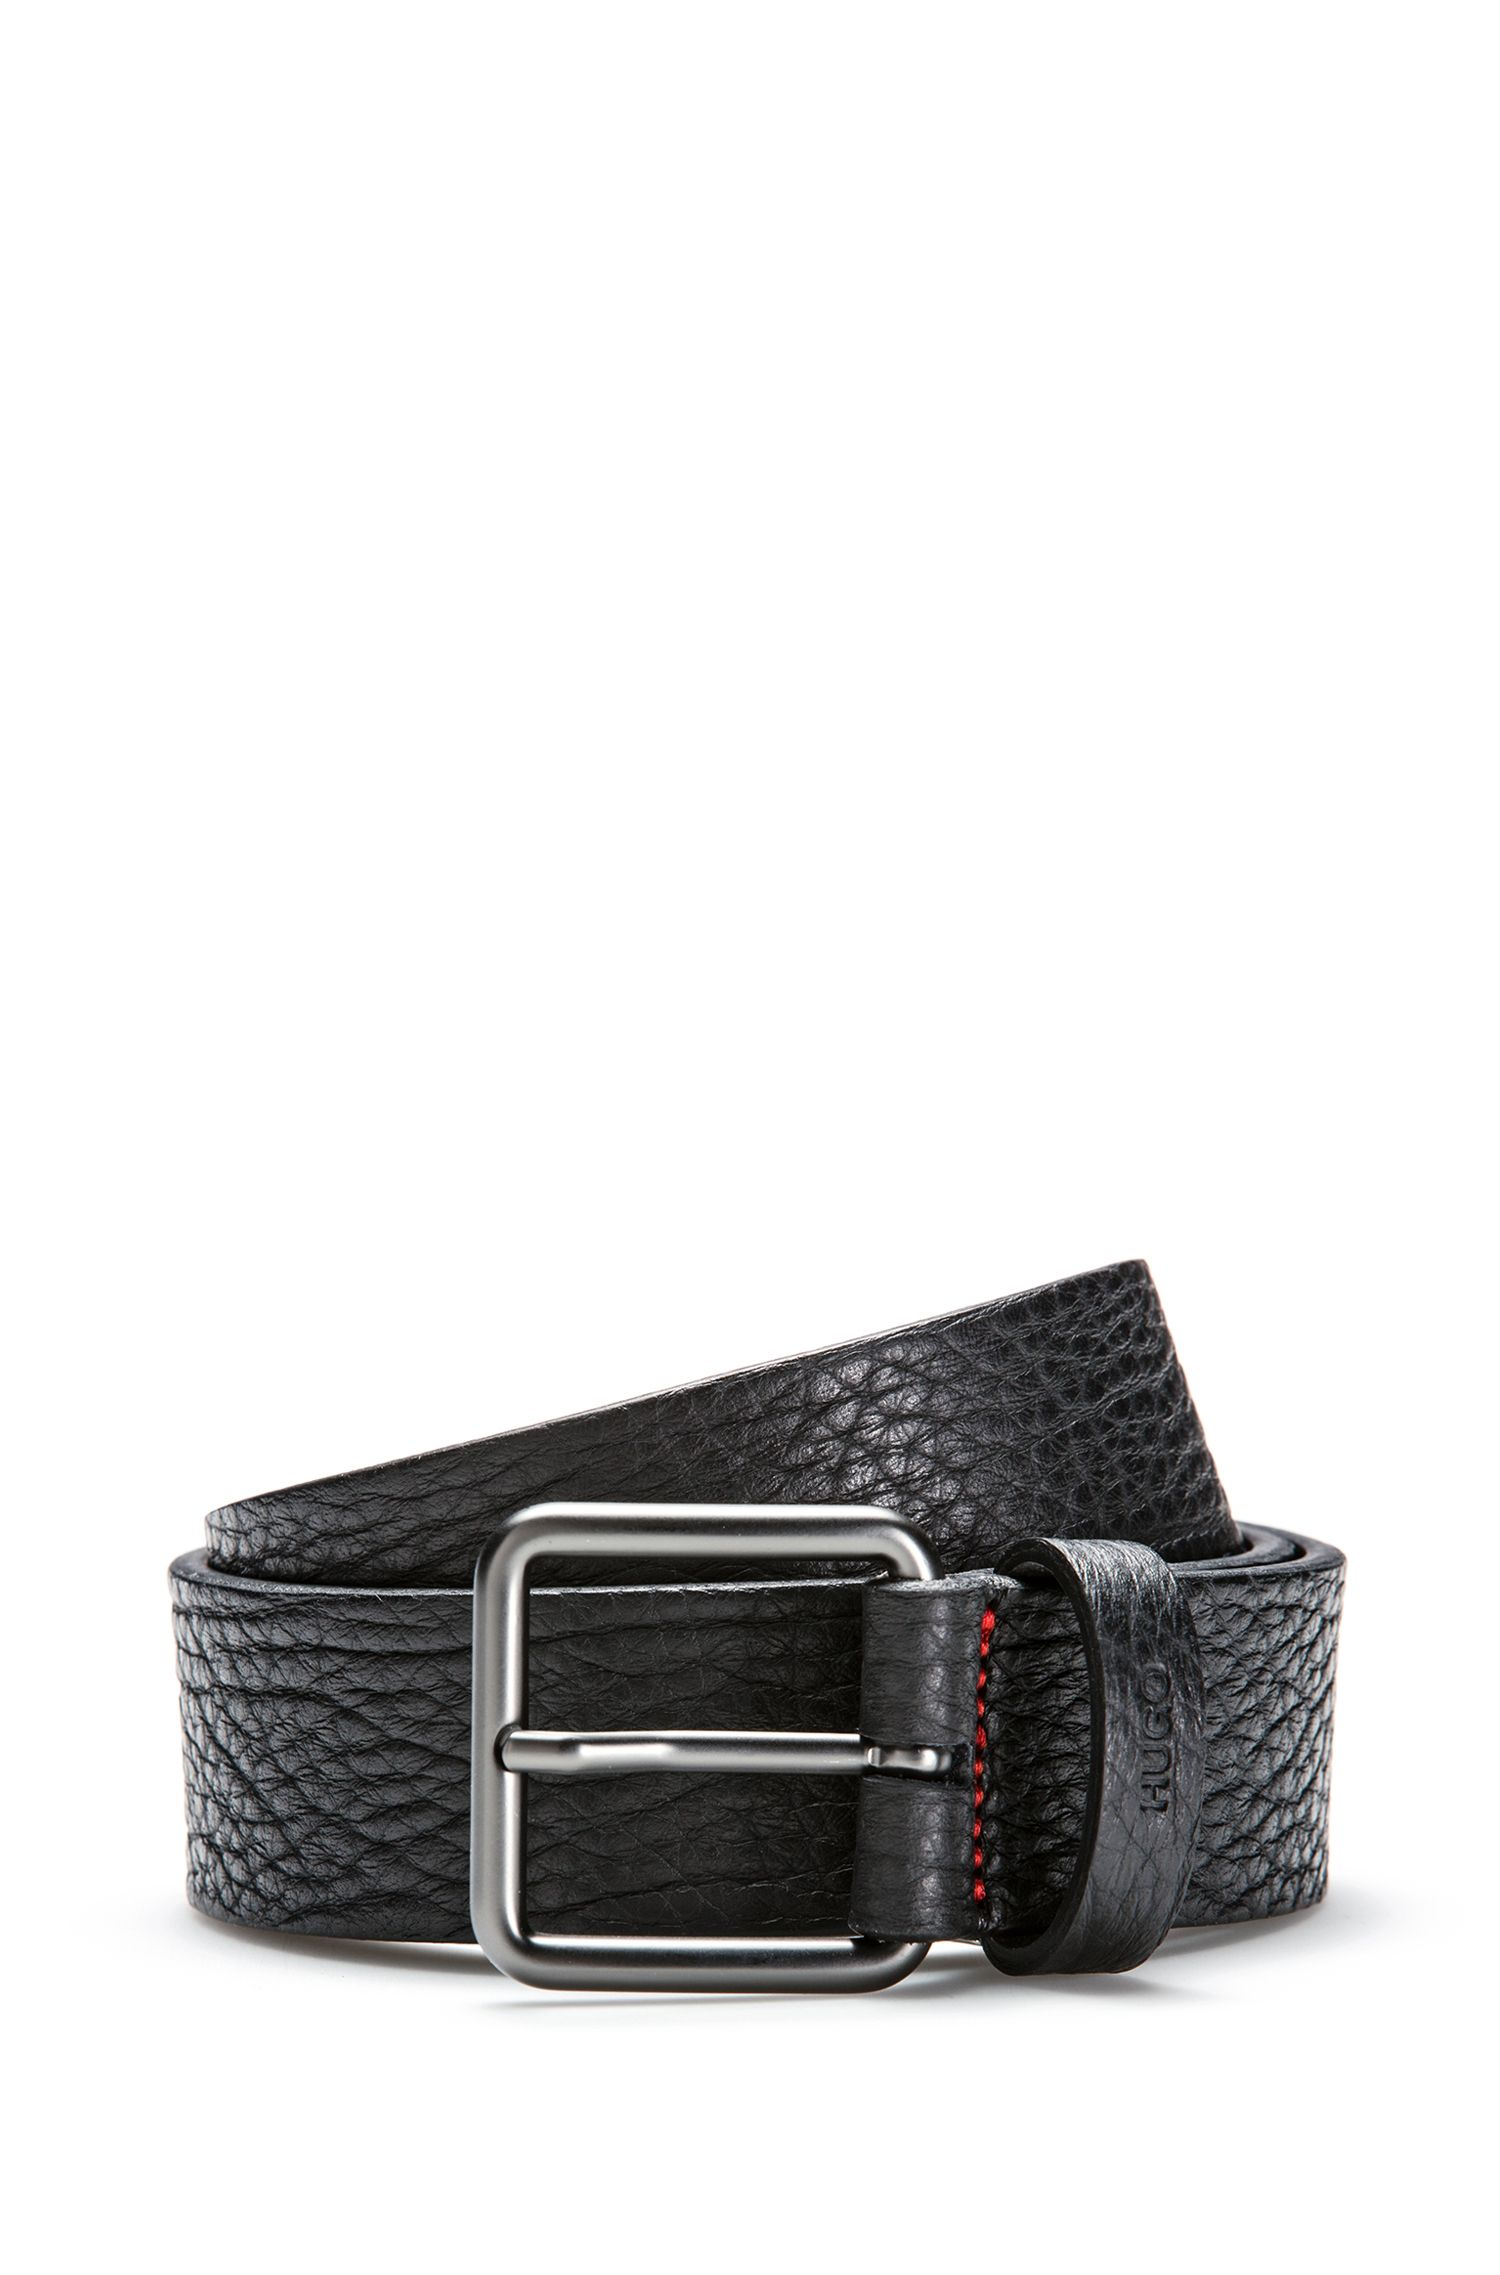 Grainy embossed leather belt with matt gunmetal pin-buckle